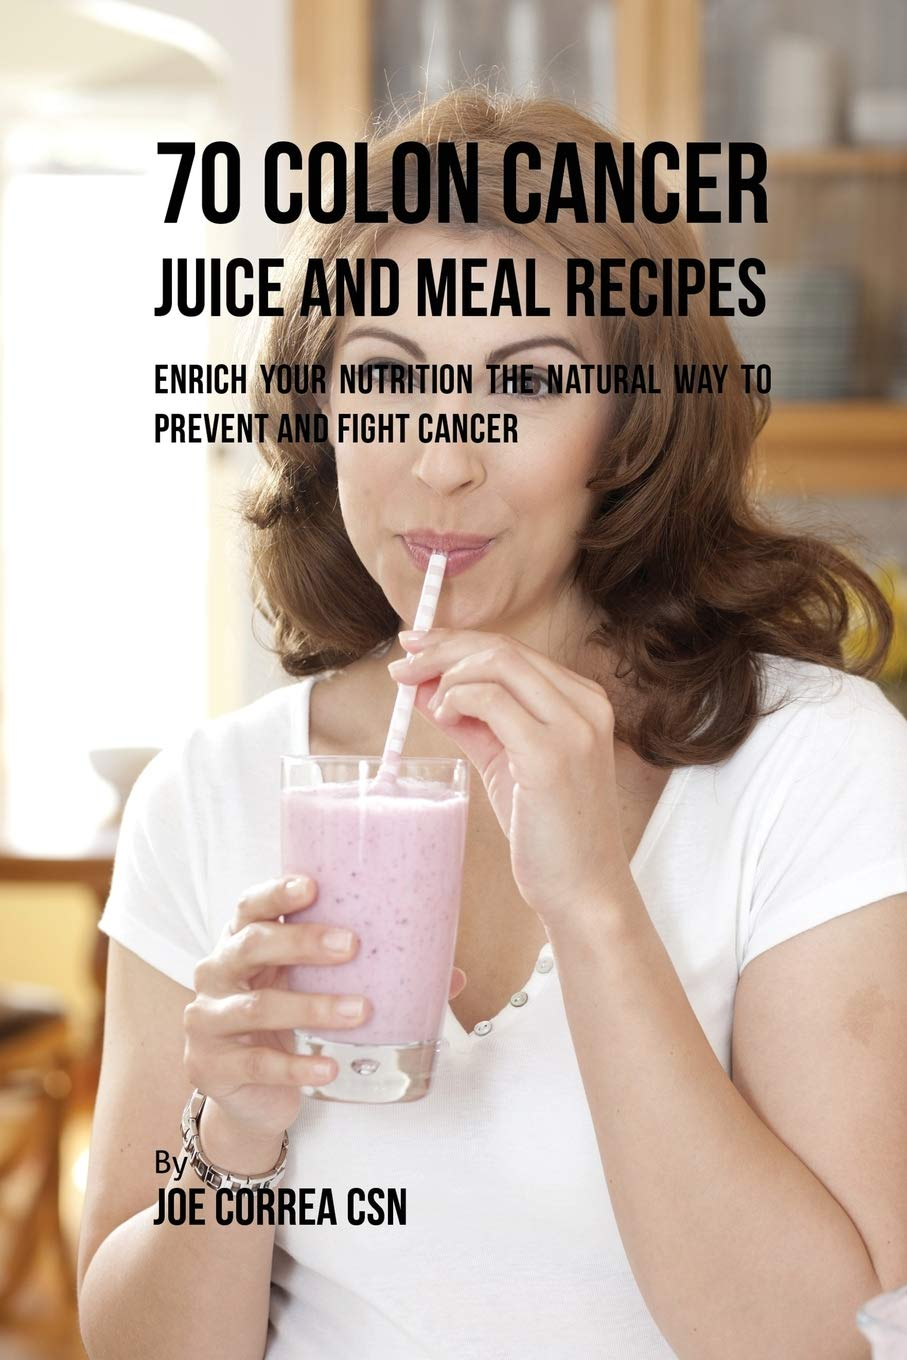 70 Colon Cancer Juice And Meal Recipes Enrich Your Nutrition The Natural Way To Prevent And Fight Cancer Correa Joe 9781635318135 Amazon Com Books